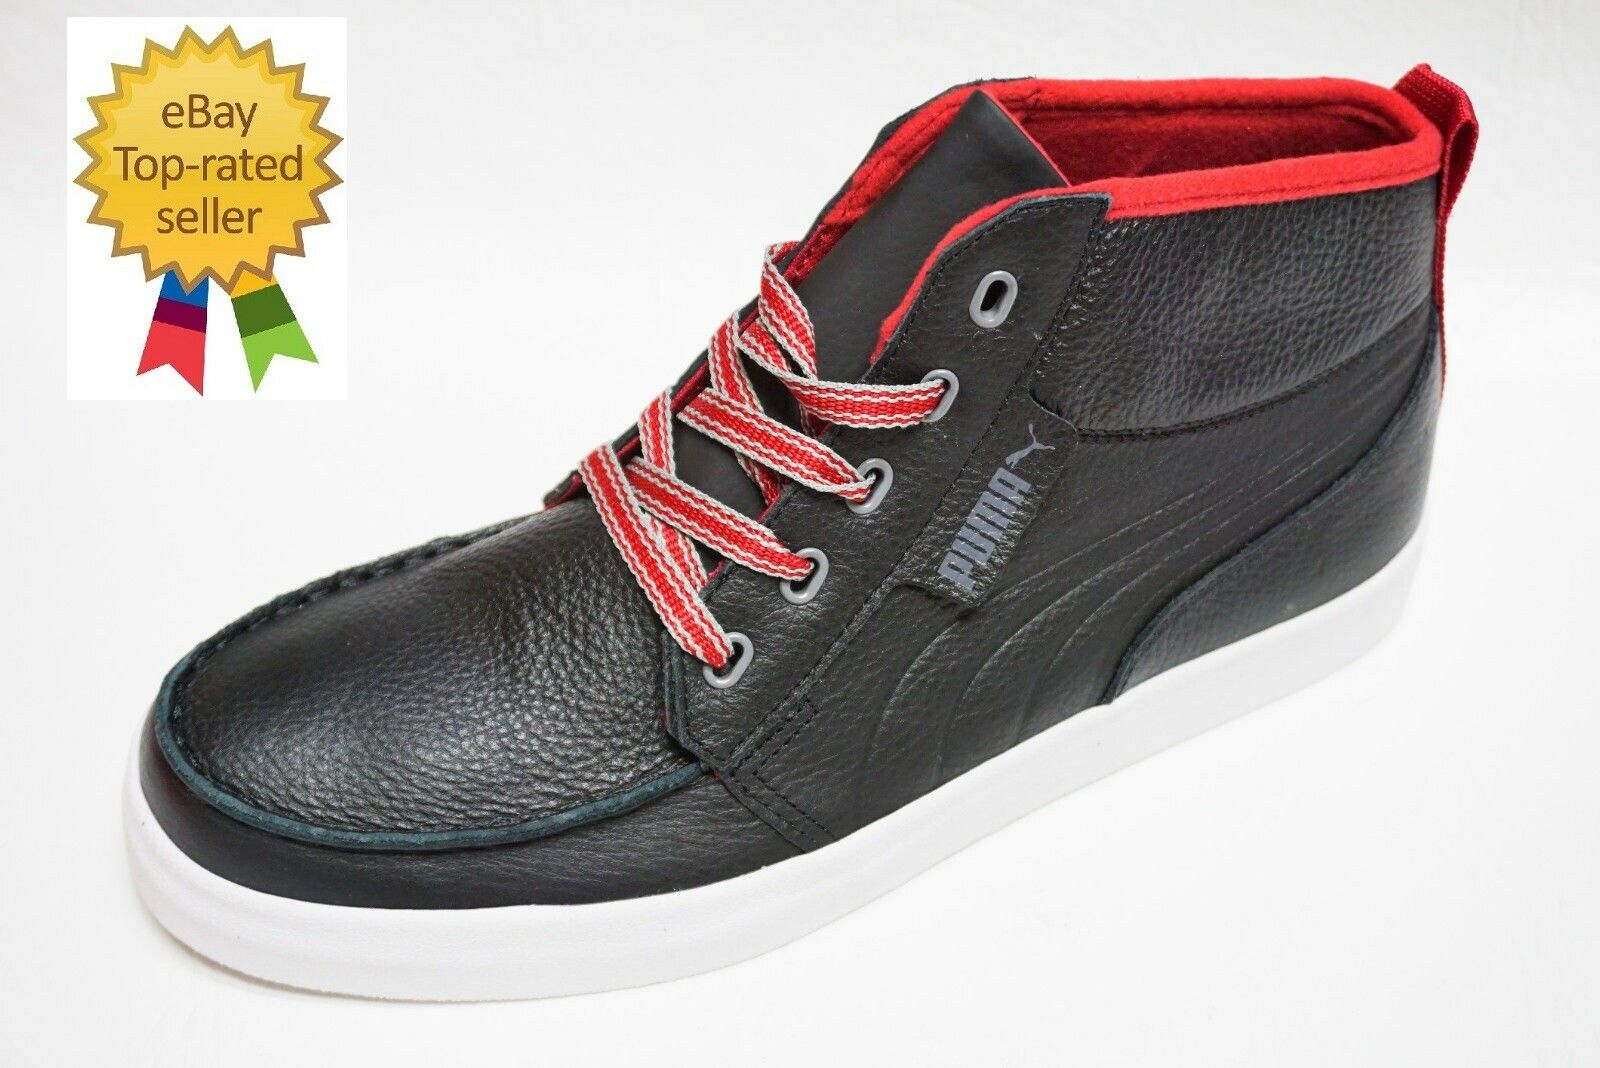 PUMA Sport mens 352132 HAWTHORNE XE Hi-Top fashion sneakers shoes 11 11.5 13 NEW